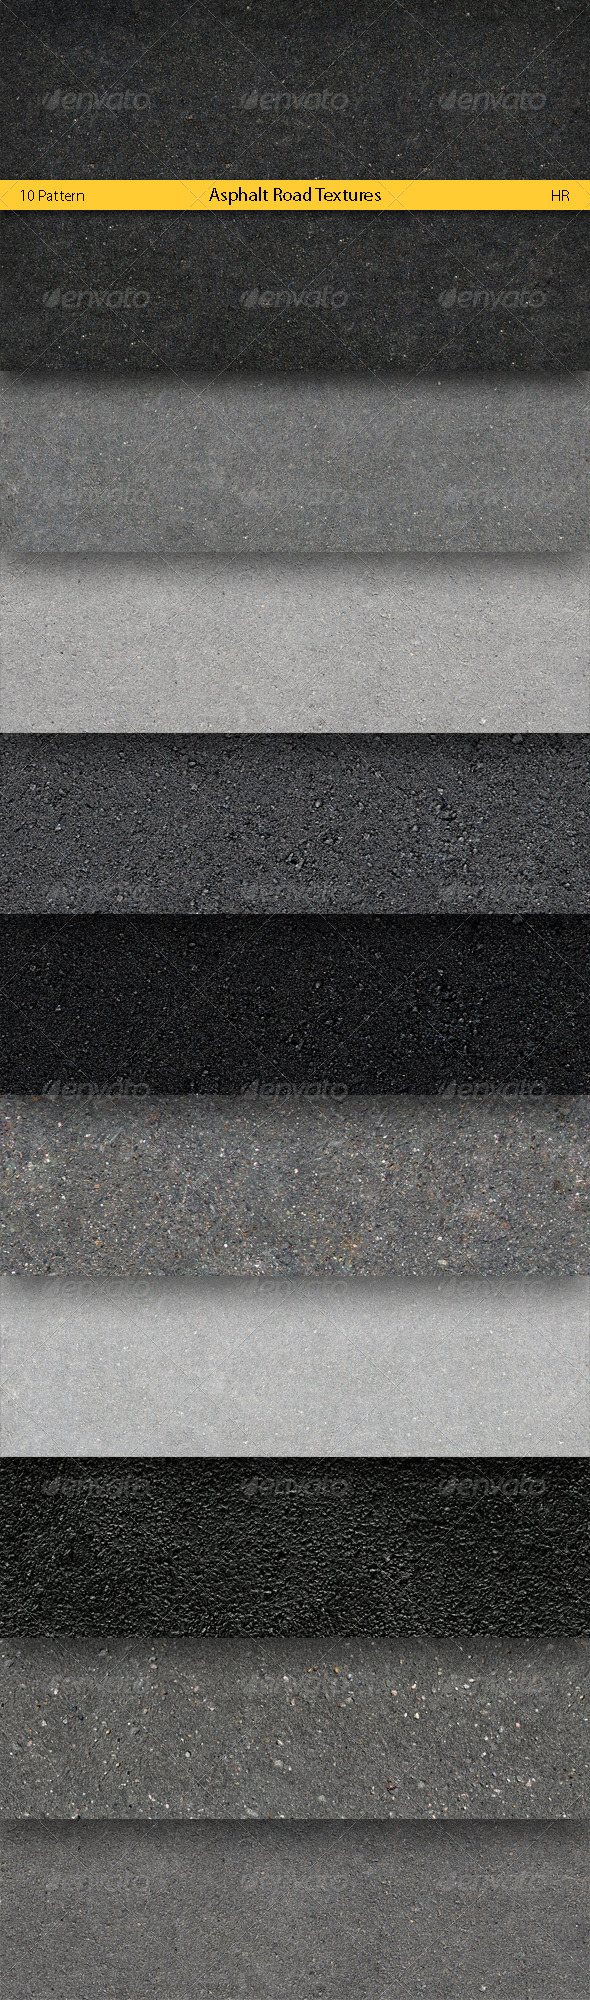 Asphalt Road Surface Textures - 3DOcean Item for Sale